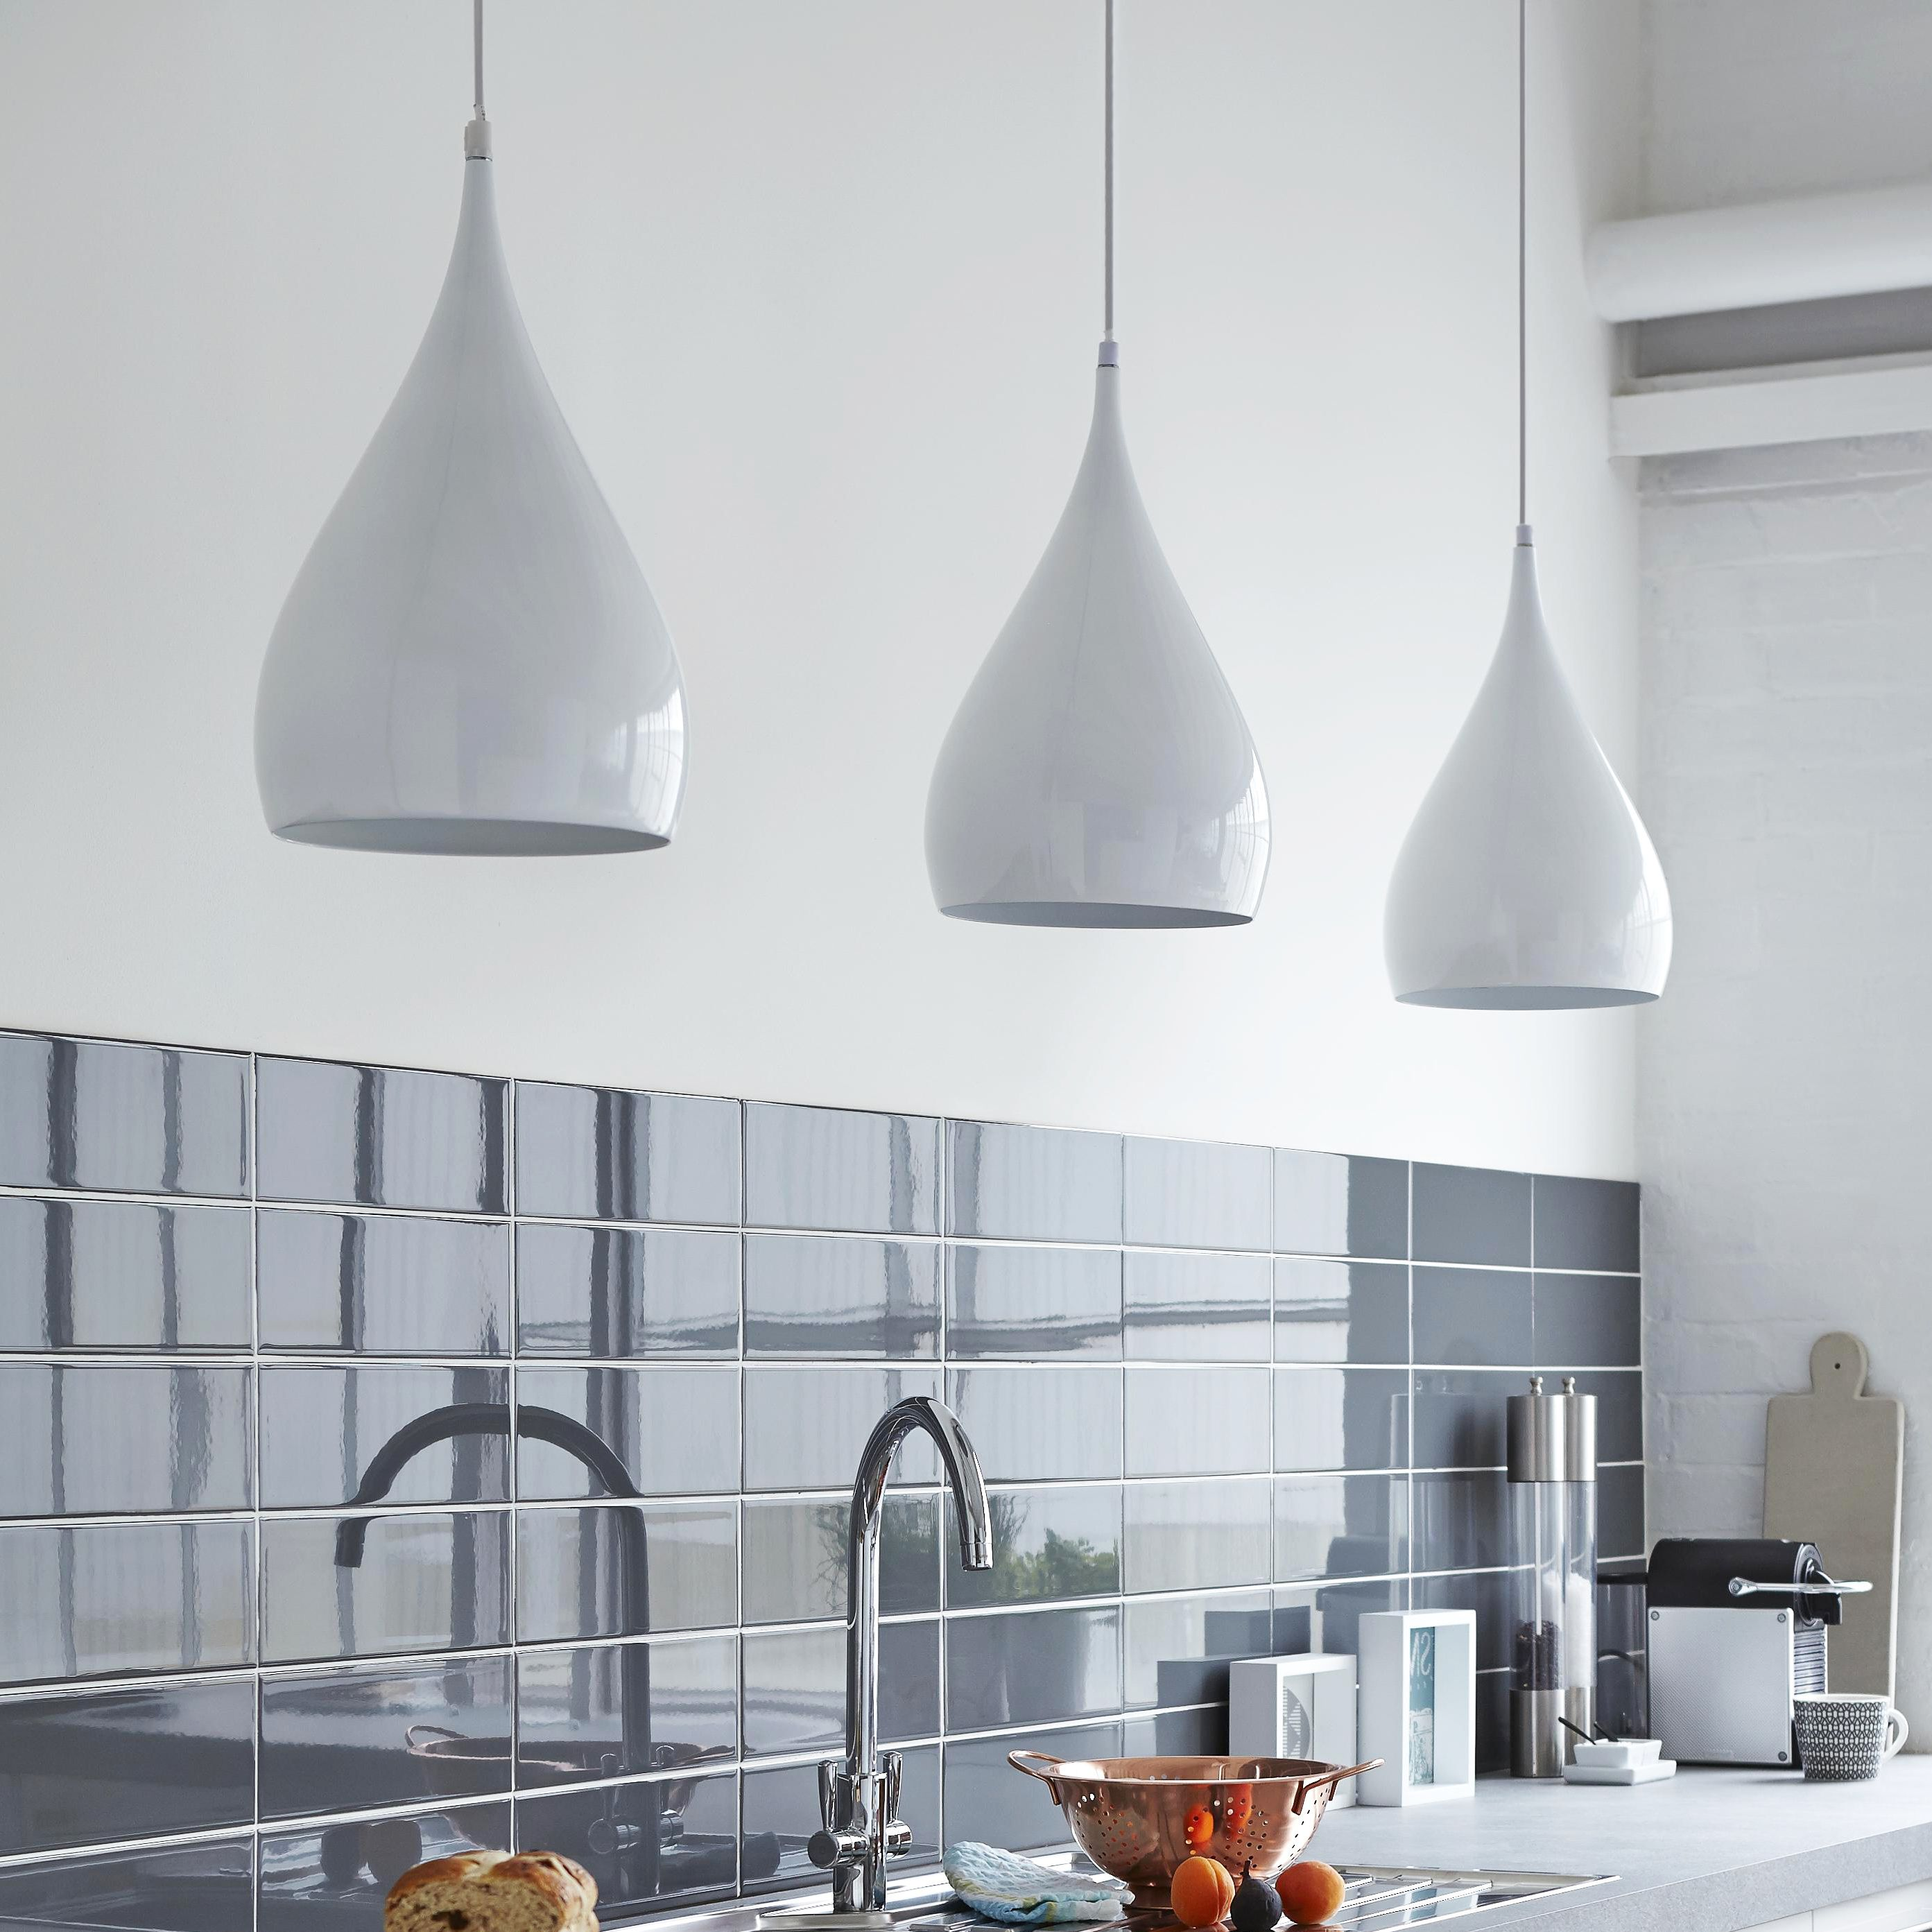 HOW TO FIT CEILING LIGHTS